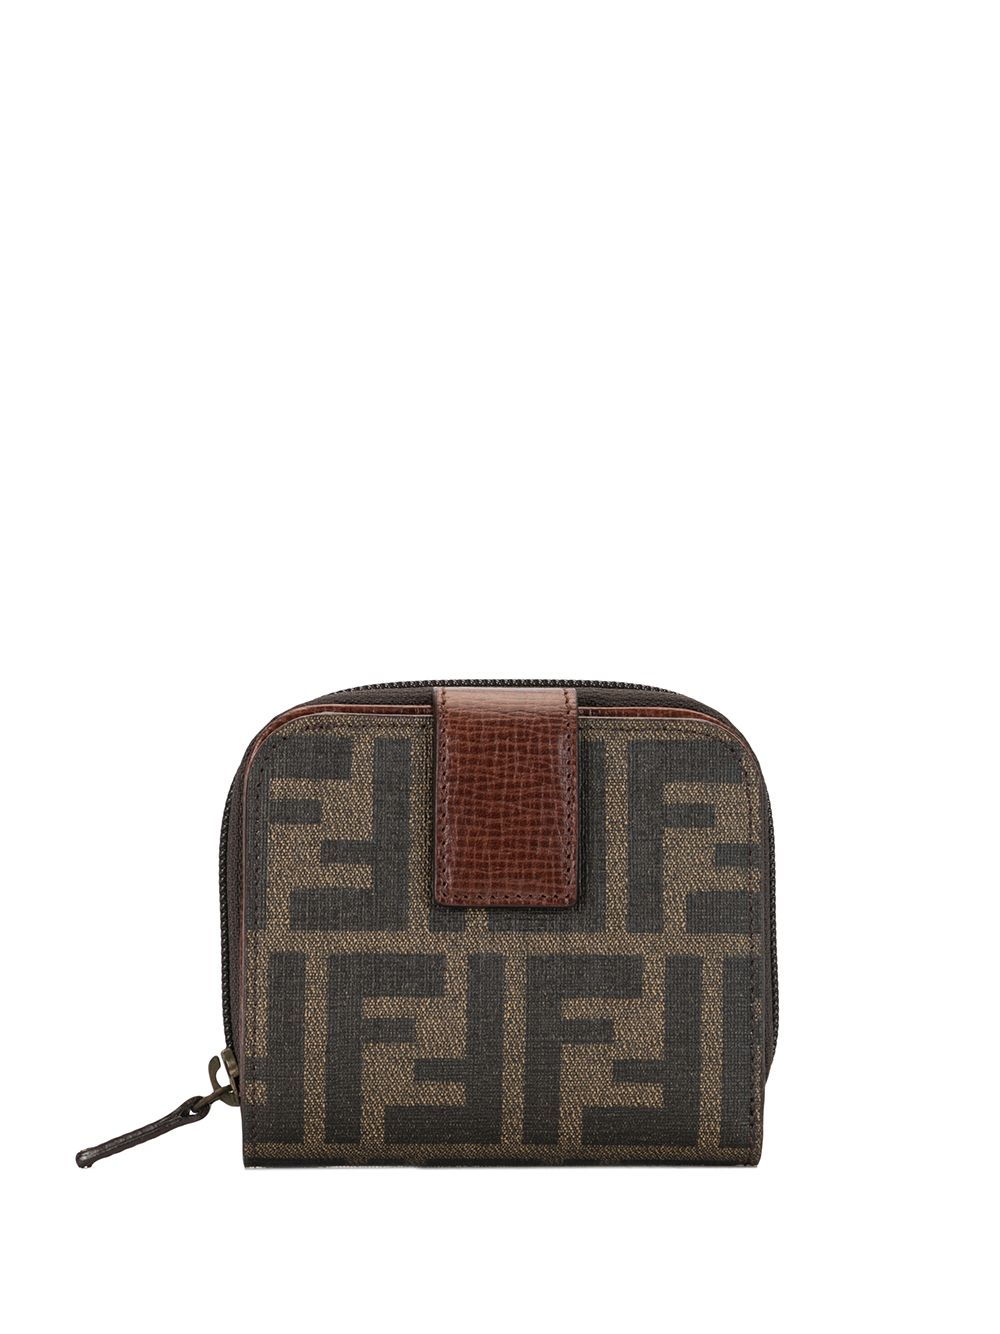 Fendi Pre-Owned Zucca bifold zipped wallet - Brown von Fendi Pre-Owned